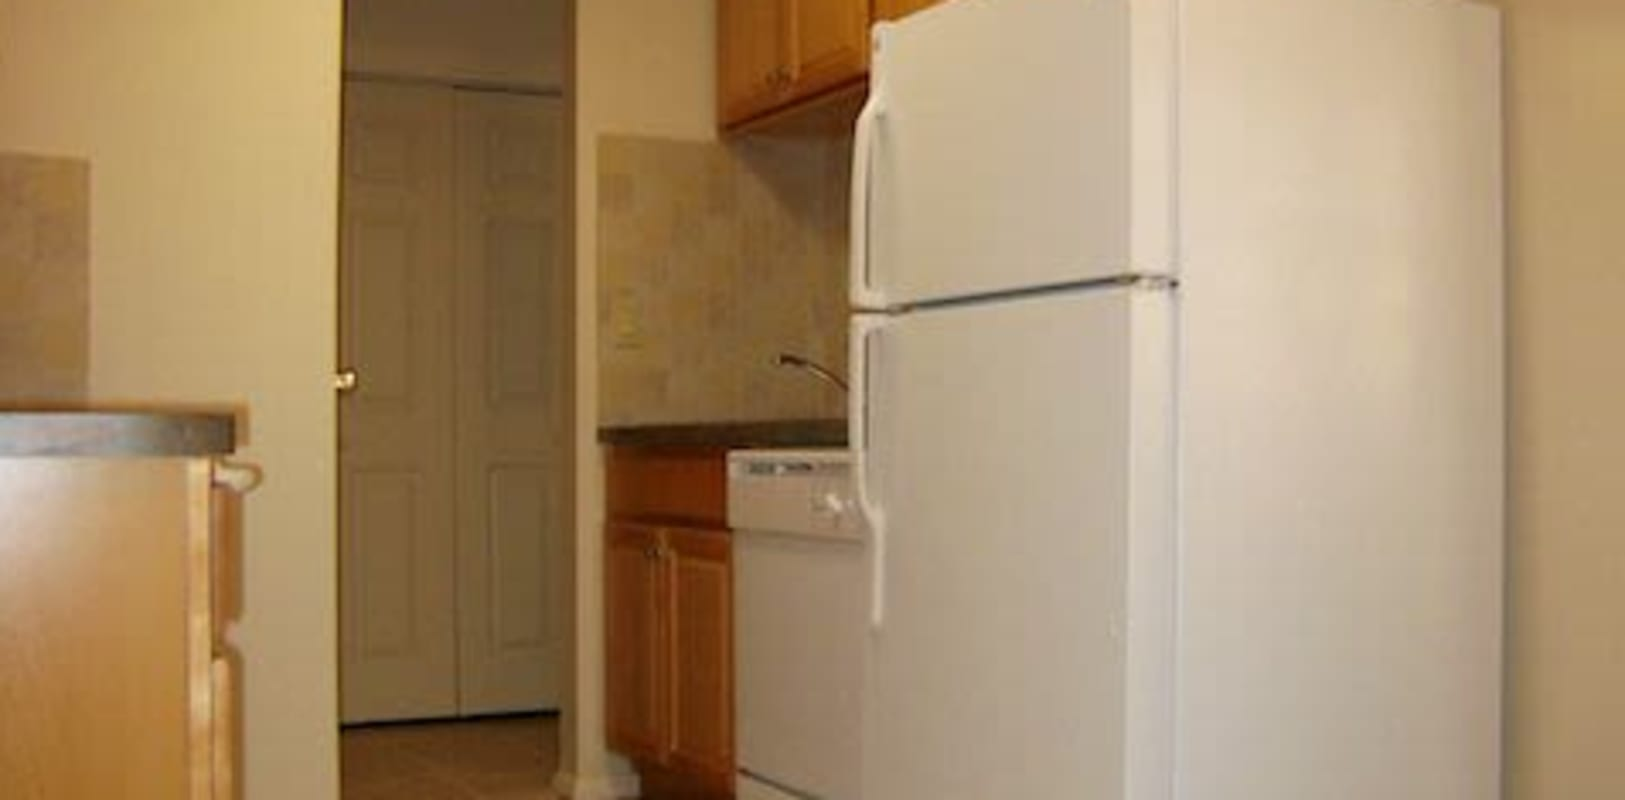 Fridge and dishwasher at Pine Crest Apartments in Milford, New Jersey